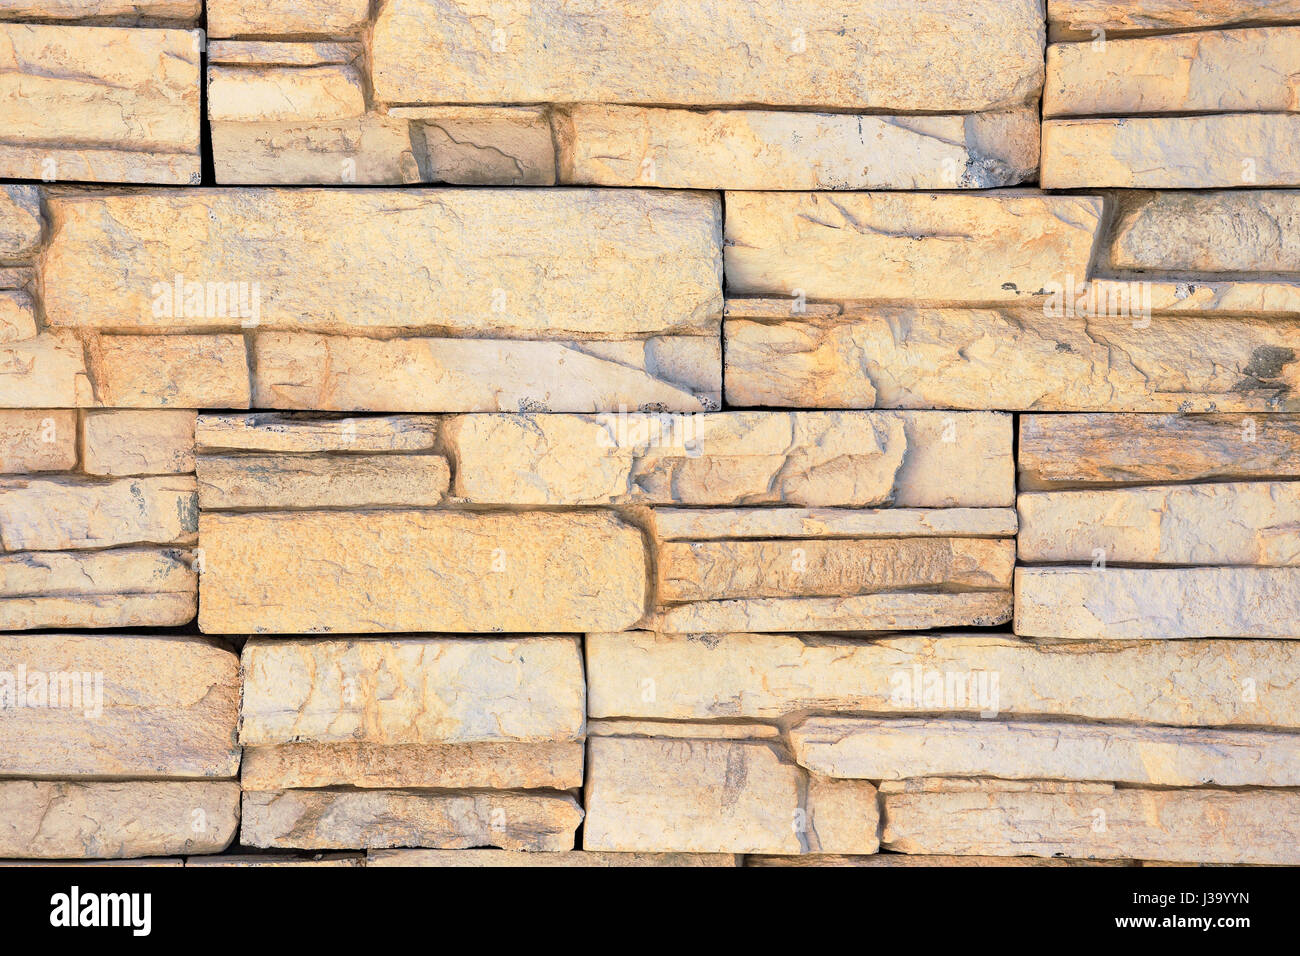 Stacked Stone Wall Texture Stock Photos & Stacked Stone Wall Texture ...